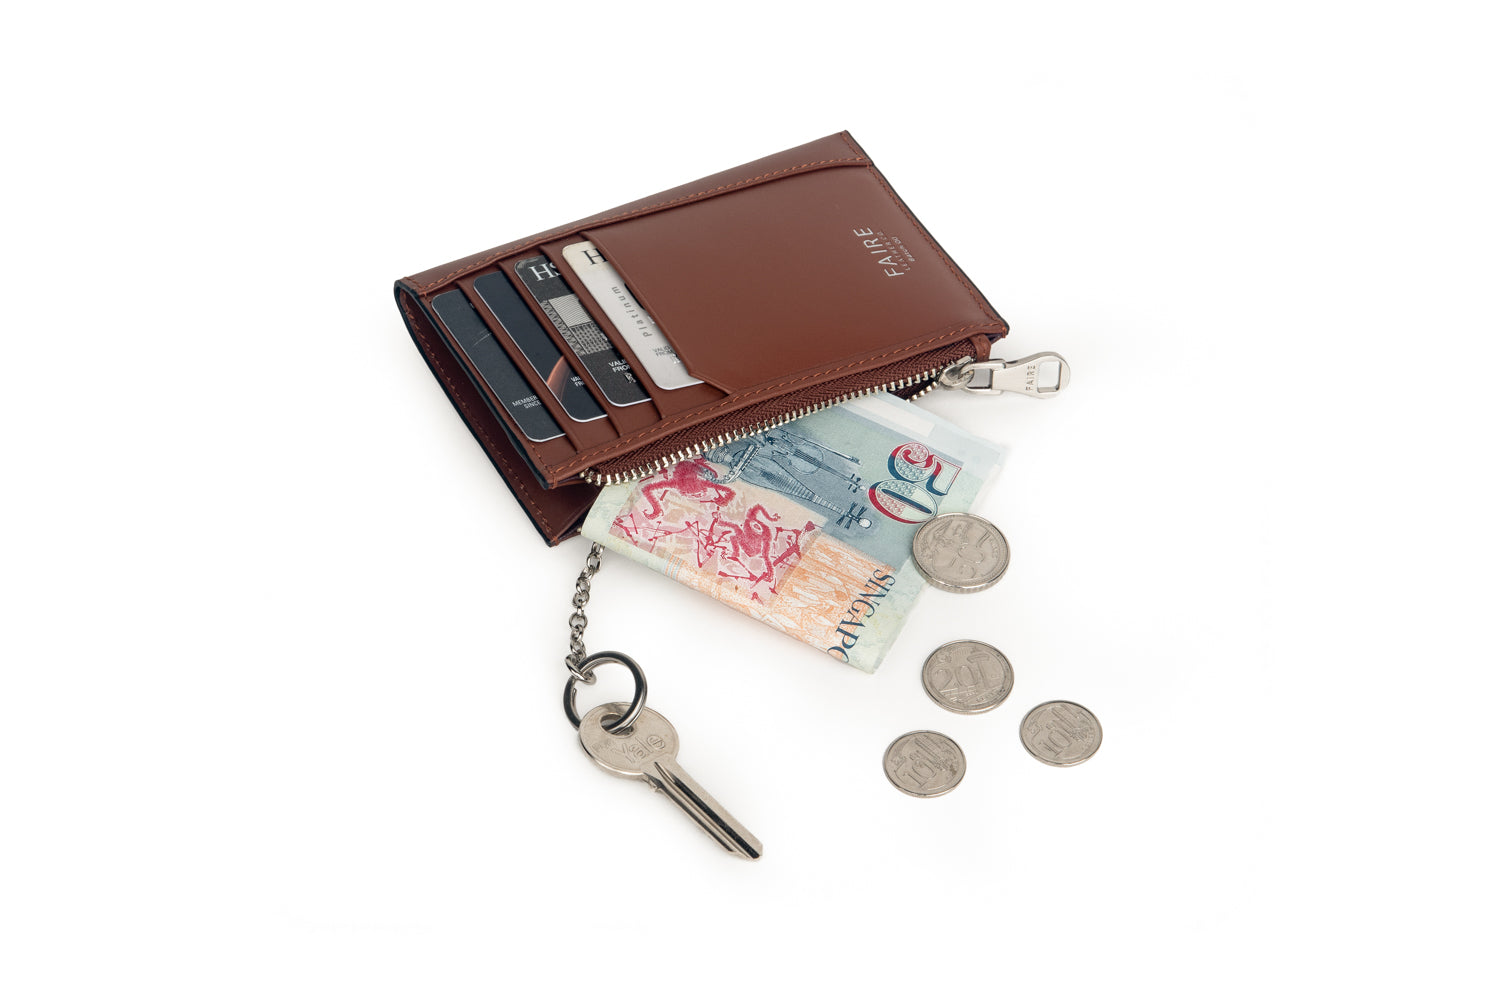 Specter Dress Belt & Card Wallet with Coin Pouch